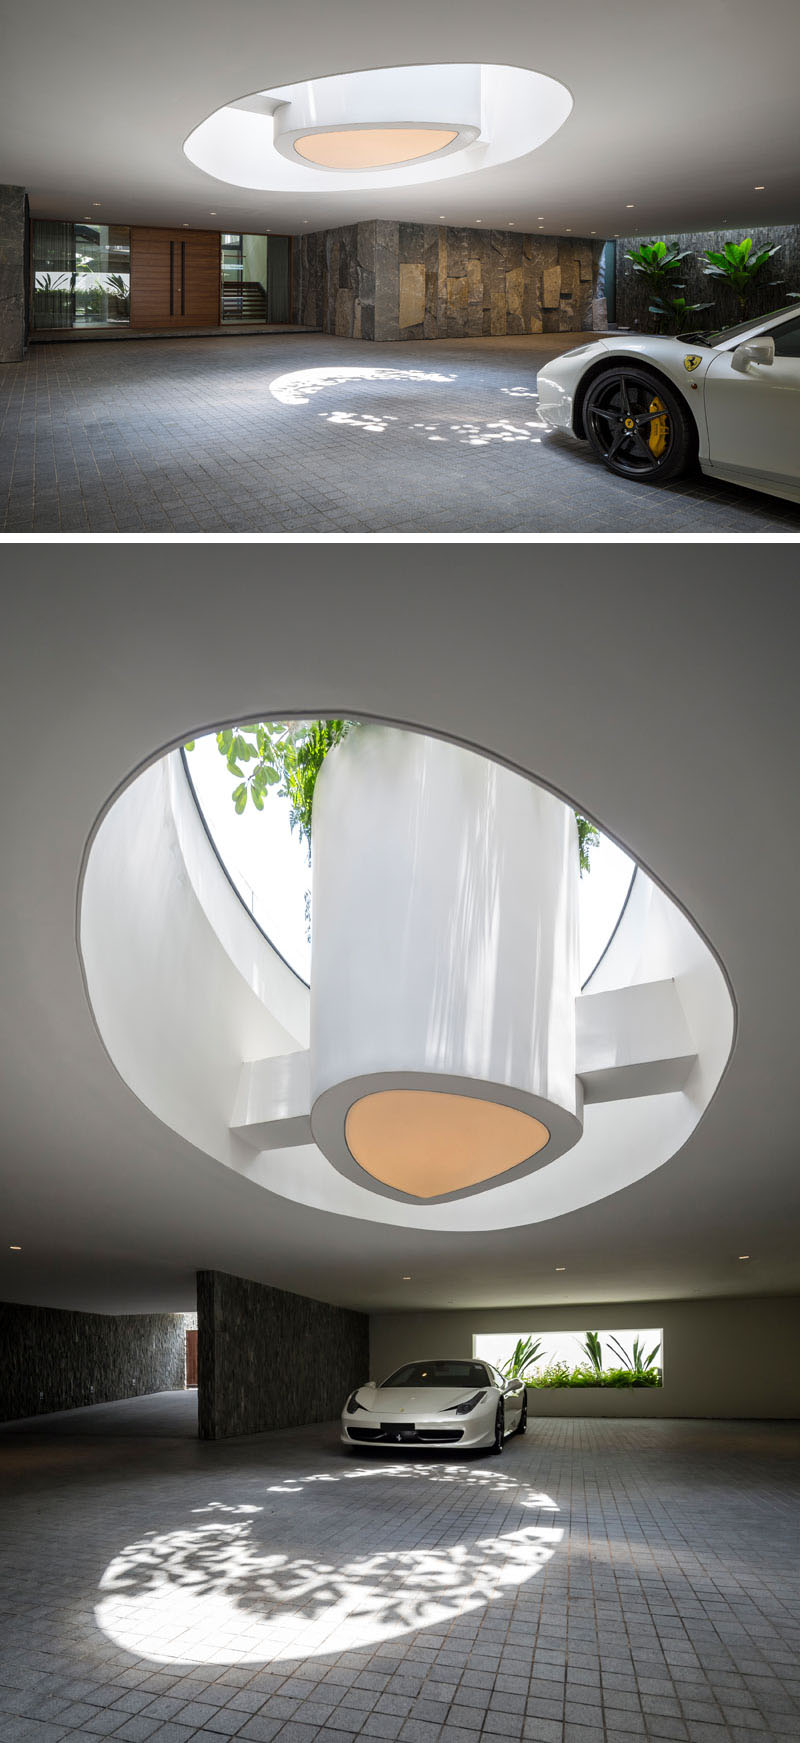 This modern garage features stone elements to help create a cave-like appearance. A large open skylight provides natural light and venting to the garage, and within the skylight is a planter that floats within the swimming pool above. #Garage #Architecture